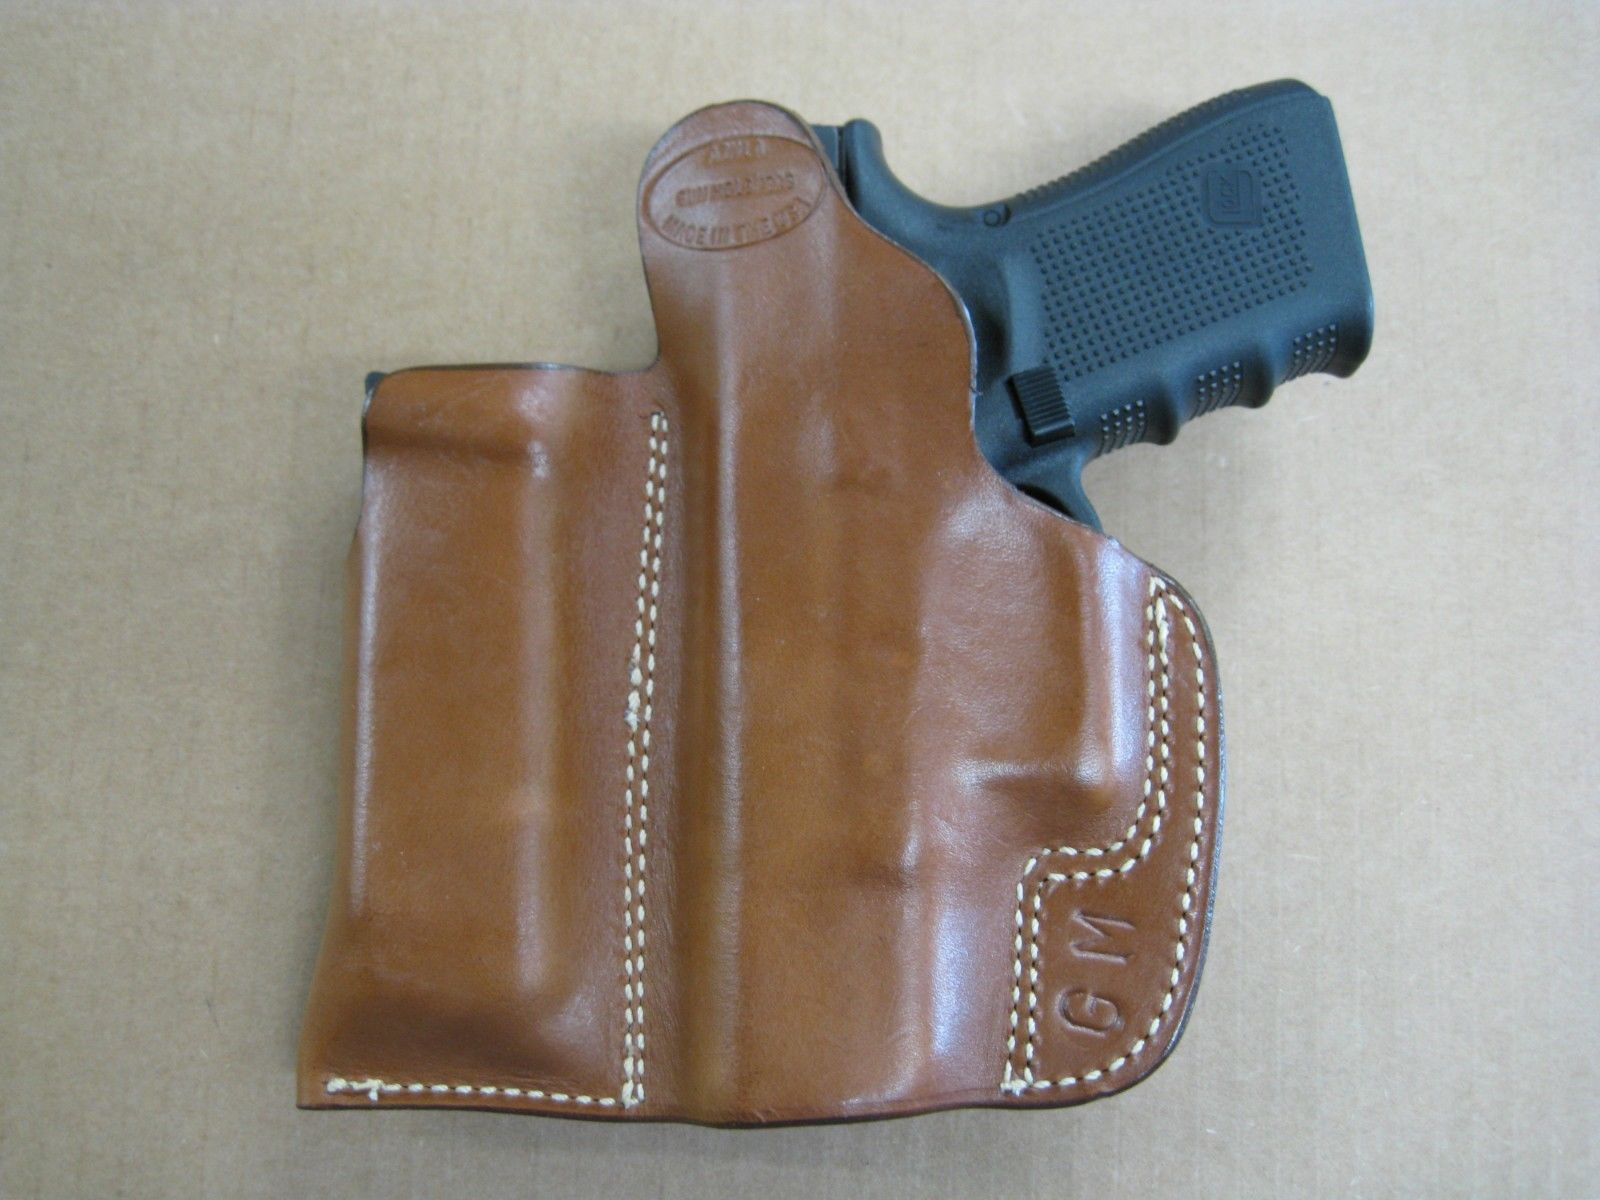 IWB Handgun Holster for Concealed Carry Pistol Holster with Mag Pouch